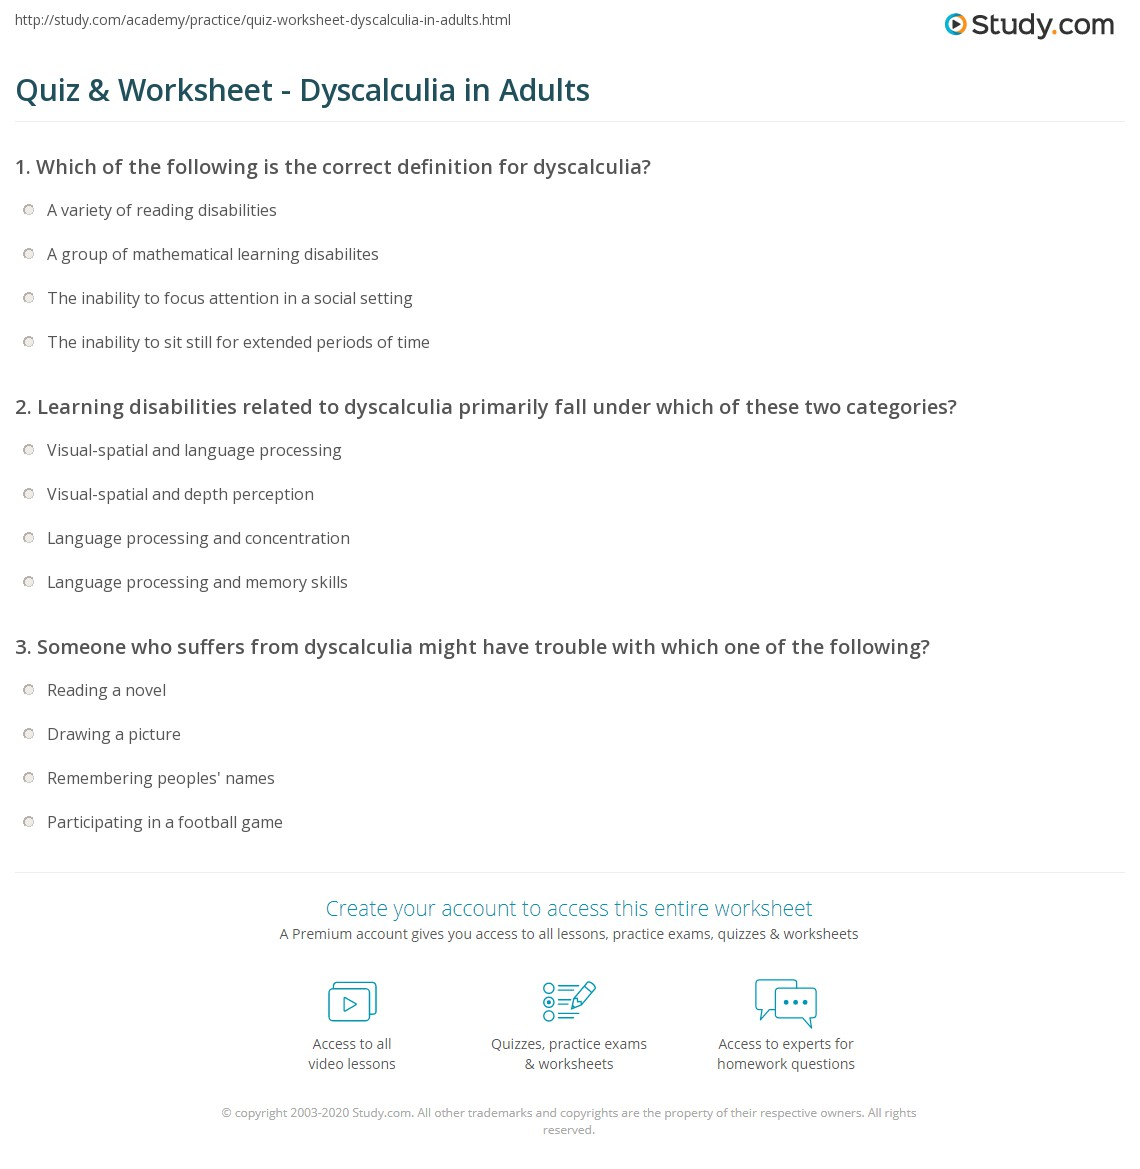 in adults Dyscalculia